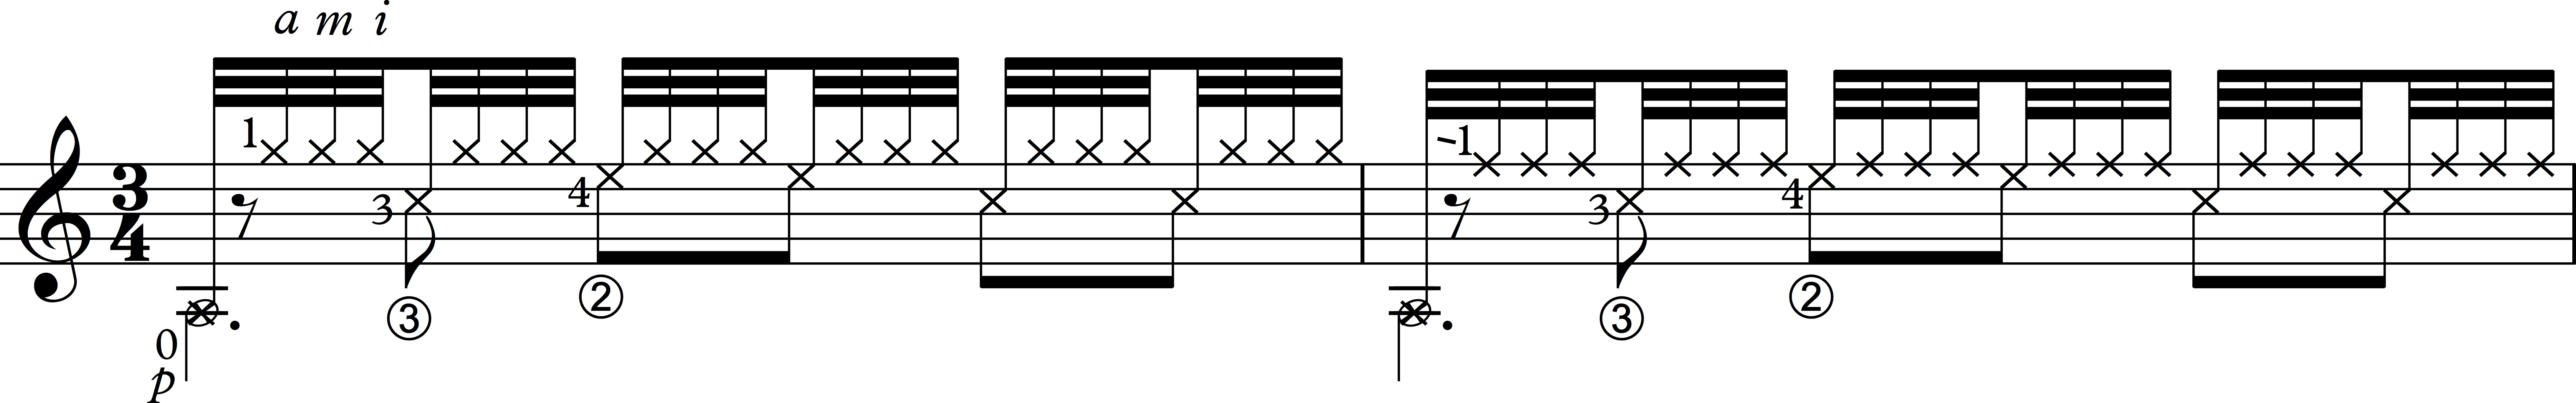 Limosna percussion 1.jpg